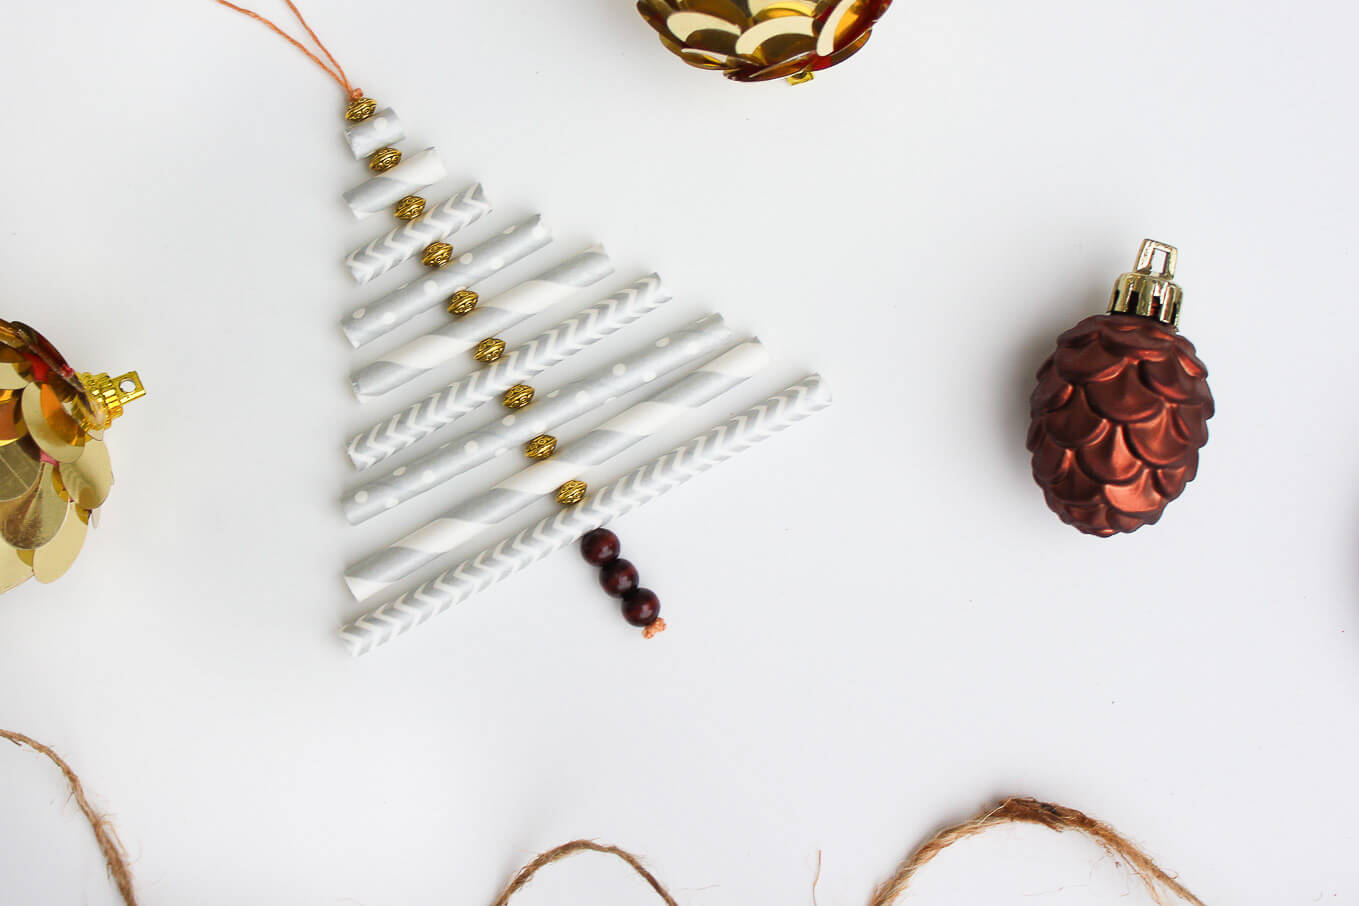 Christmas Decorations Diy With Paper : Diy christmas ornament tutorial using paper straws